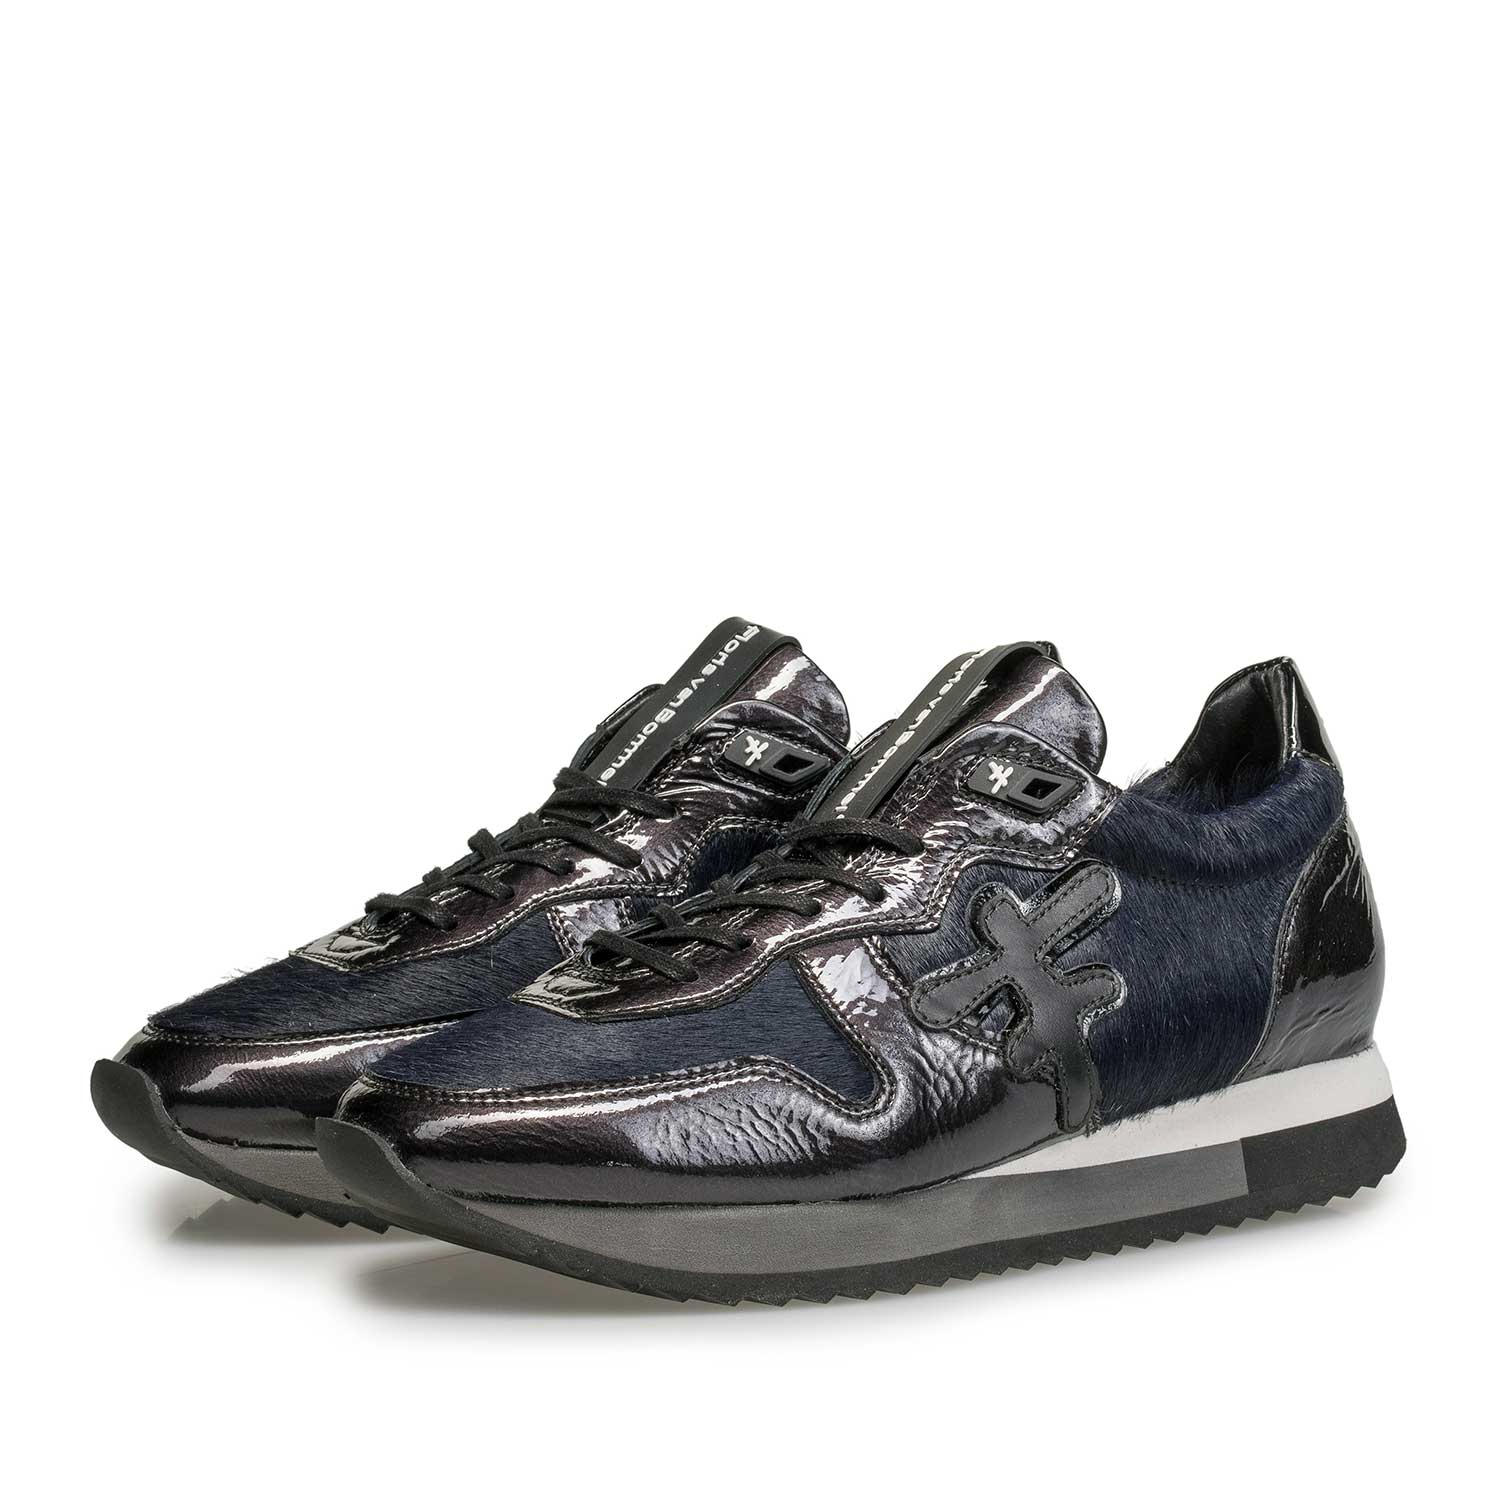 85256/02 - Blue patent leather sneaker with runner's sole